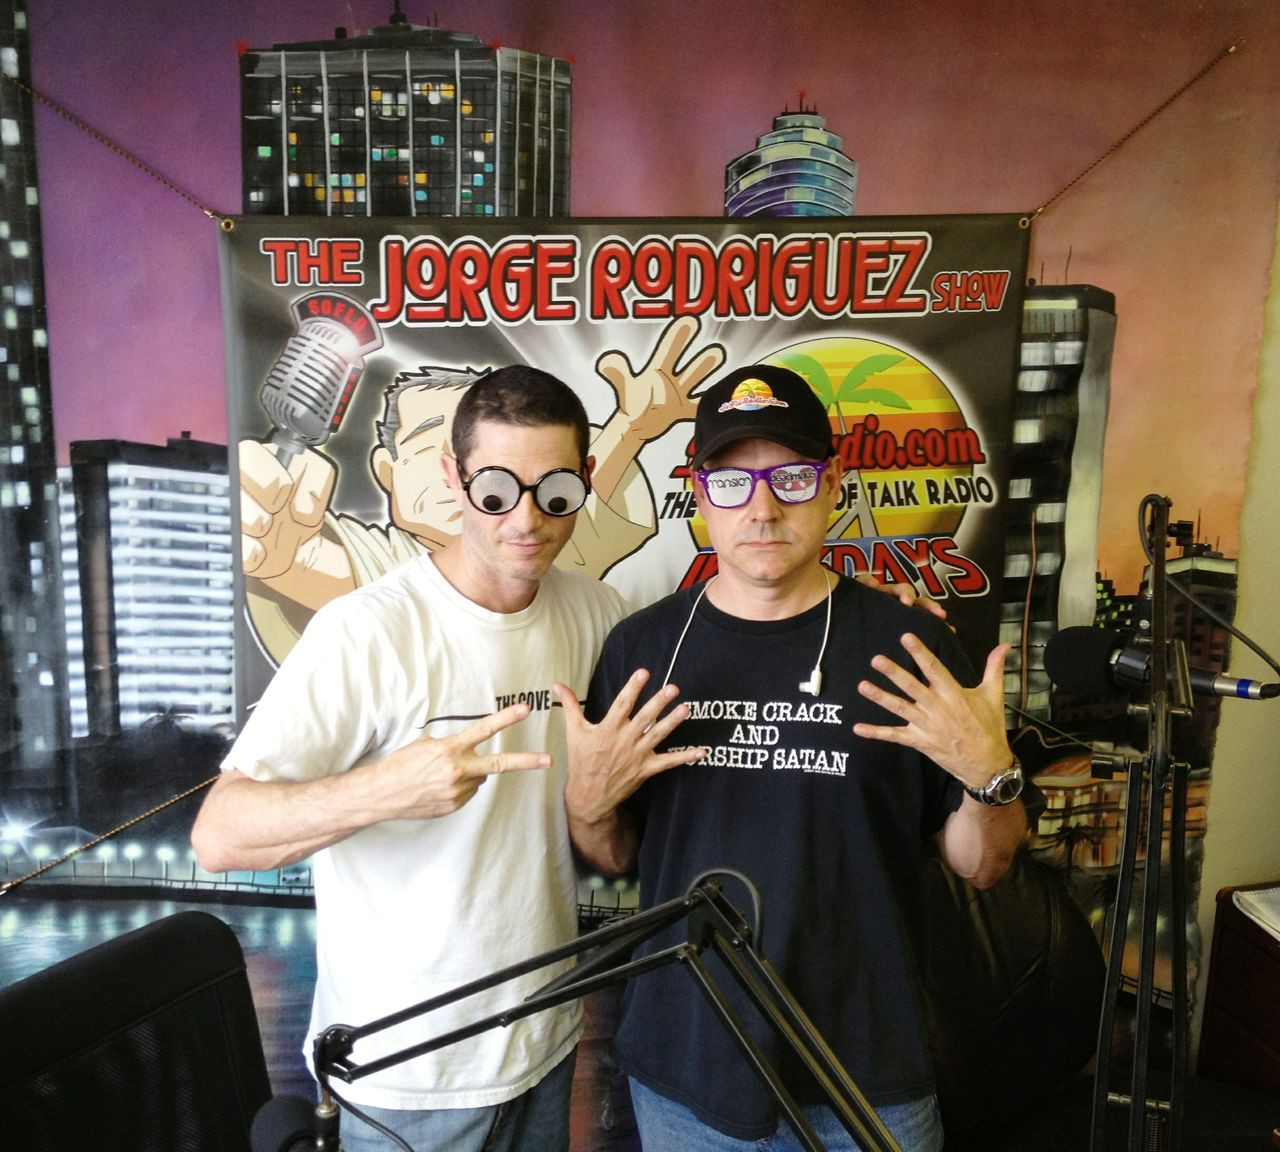 The Jorge Rodriguez Show 4-18-14